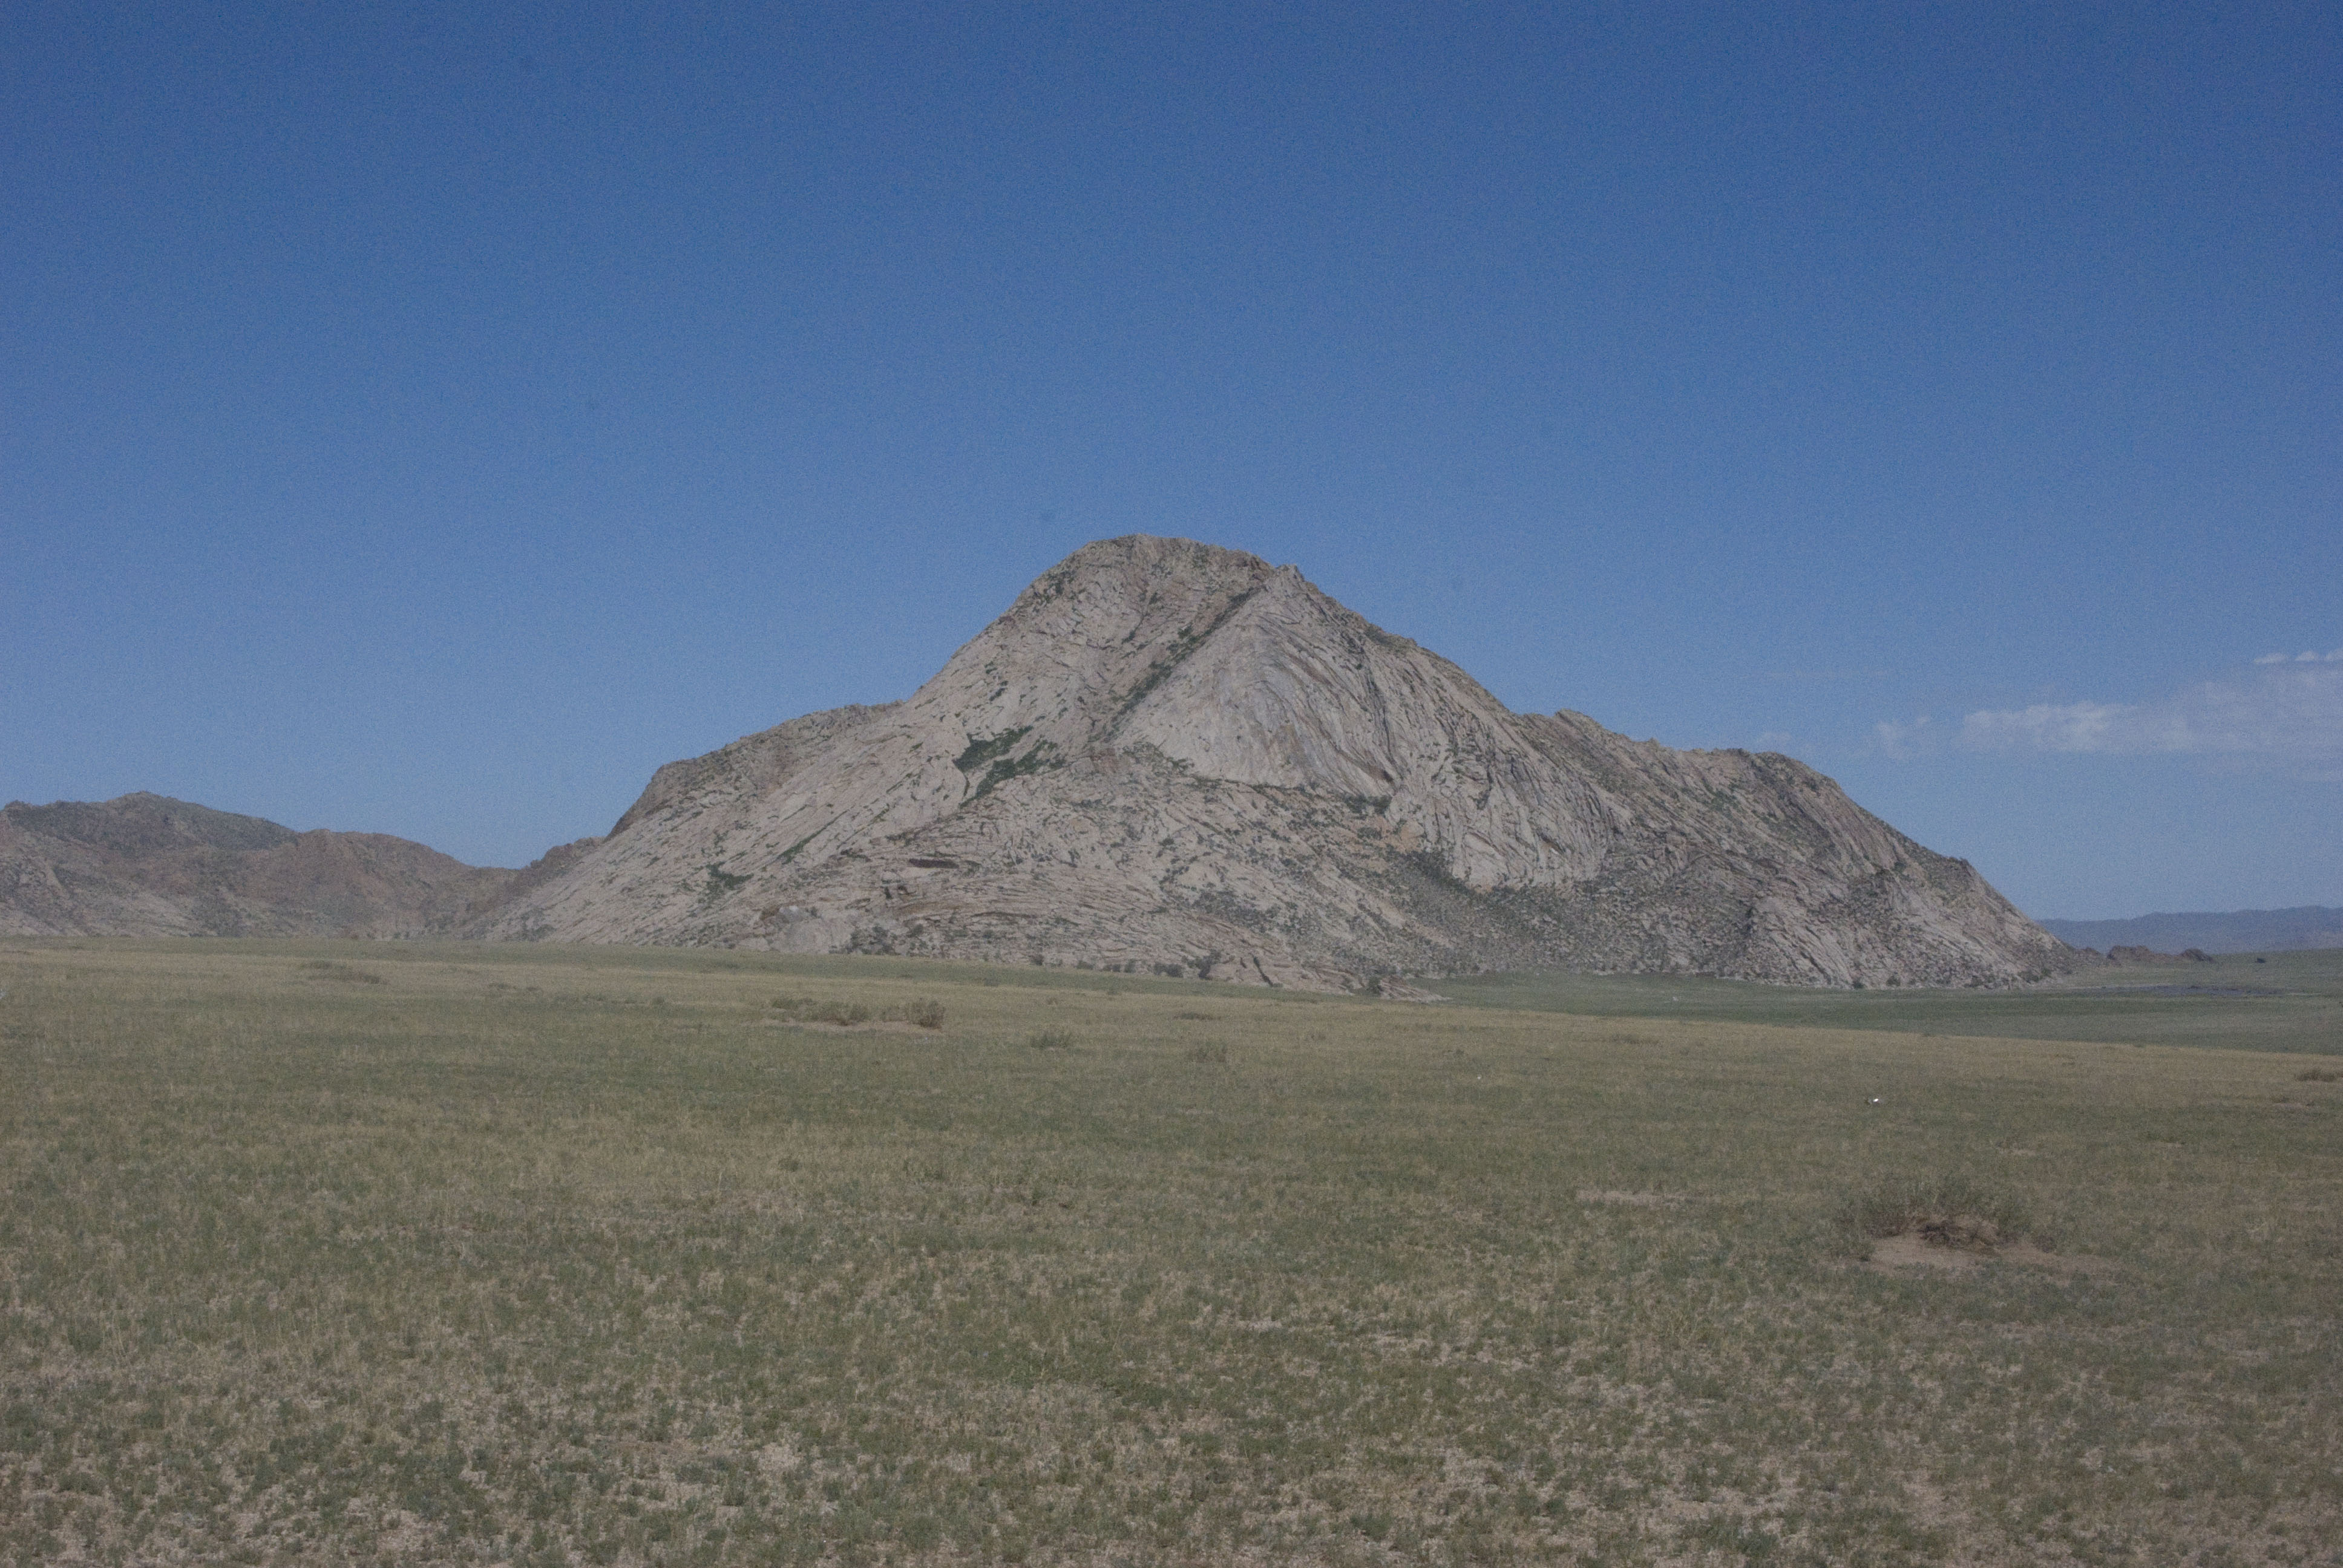 Tahilgat Hairhan, the moutain we saw on the way south